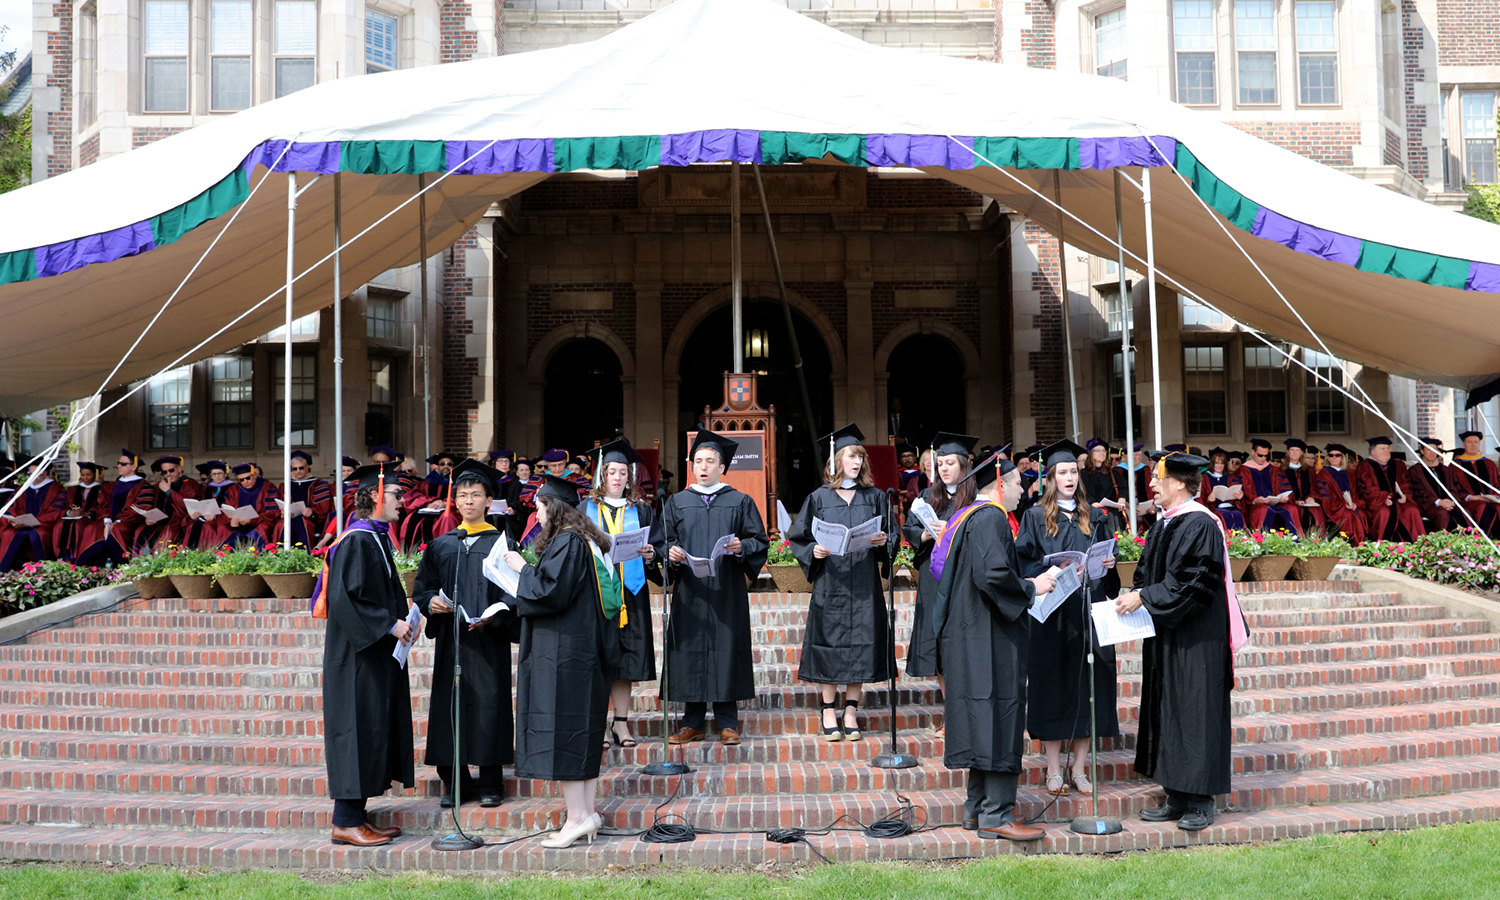 Senior members of the Colleges' Choir perform on the steps of Coxe Hall during Sunday's Commencement ceremony.